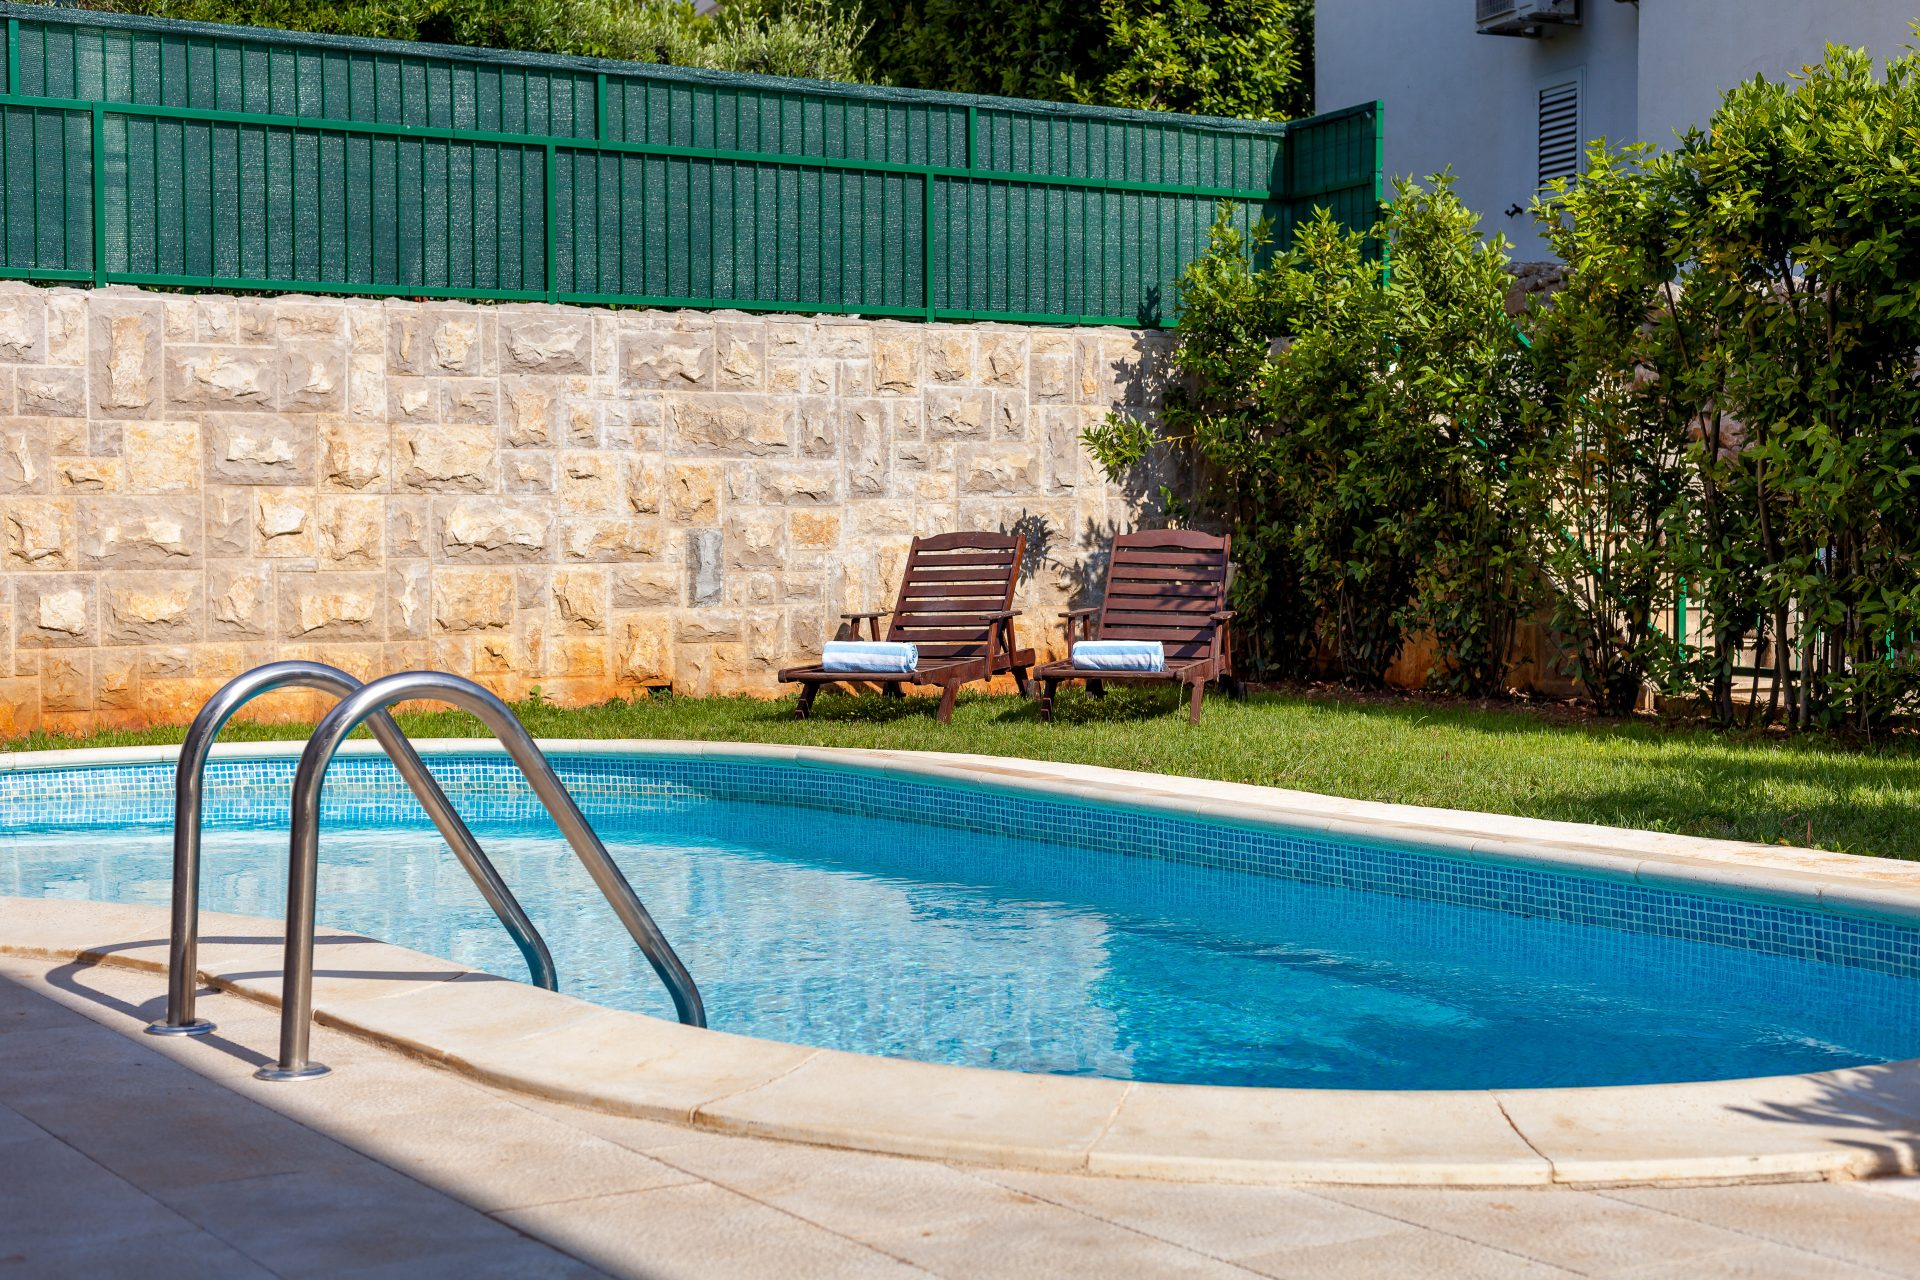 Private swimming pool with relaxing bed chairs